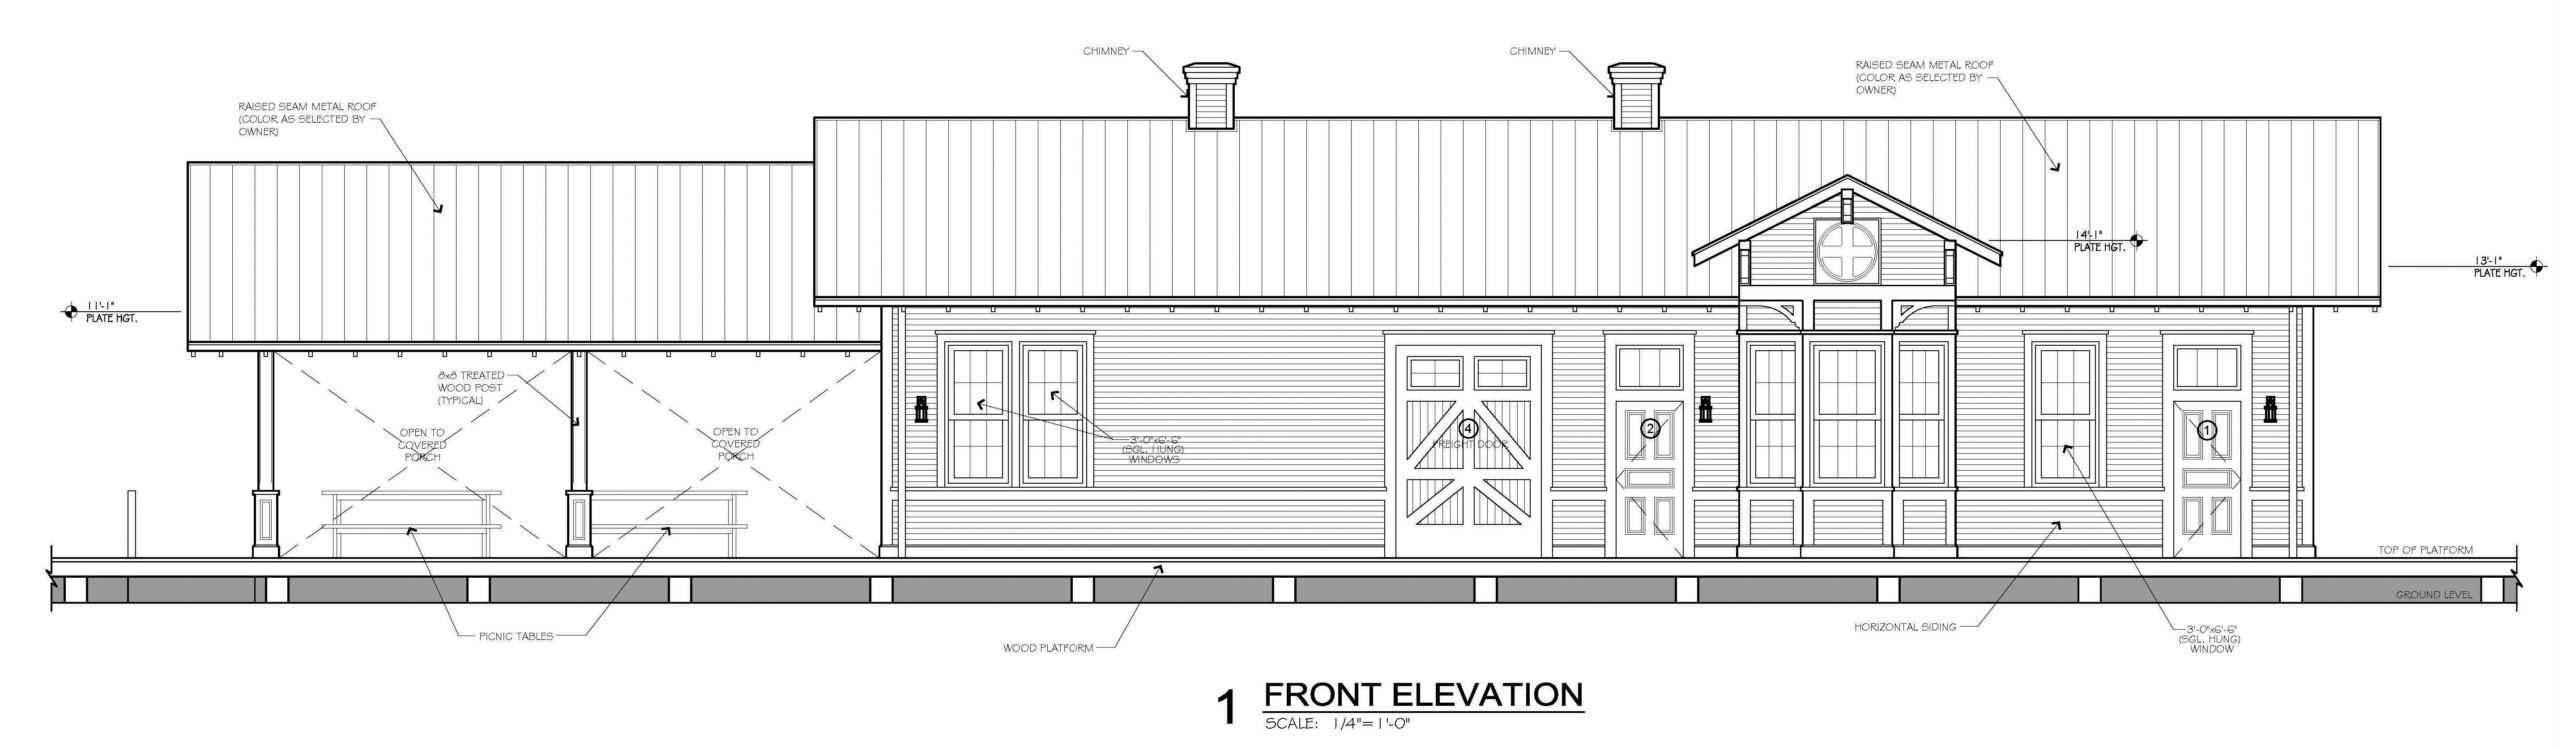 Image of Philmont Metcalf Station depot plans